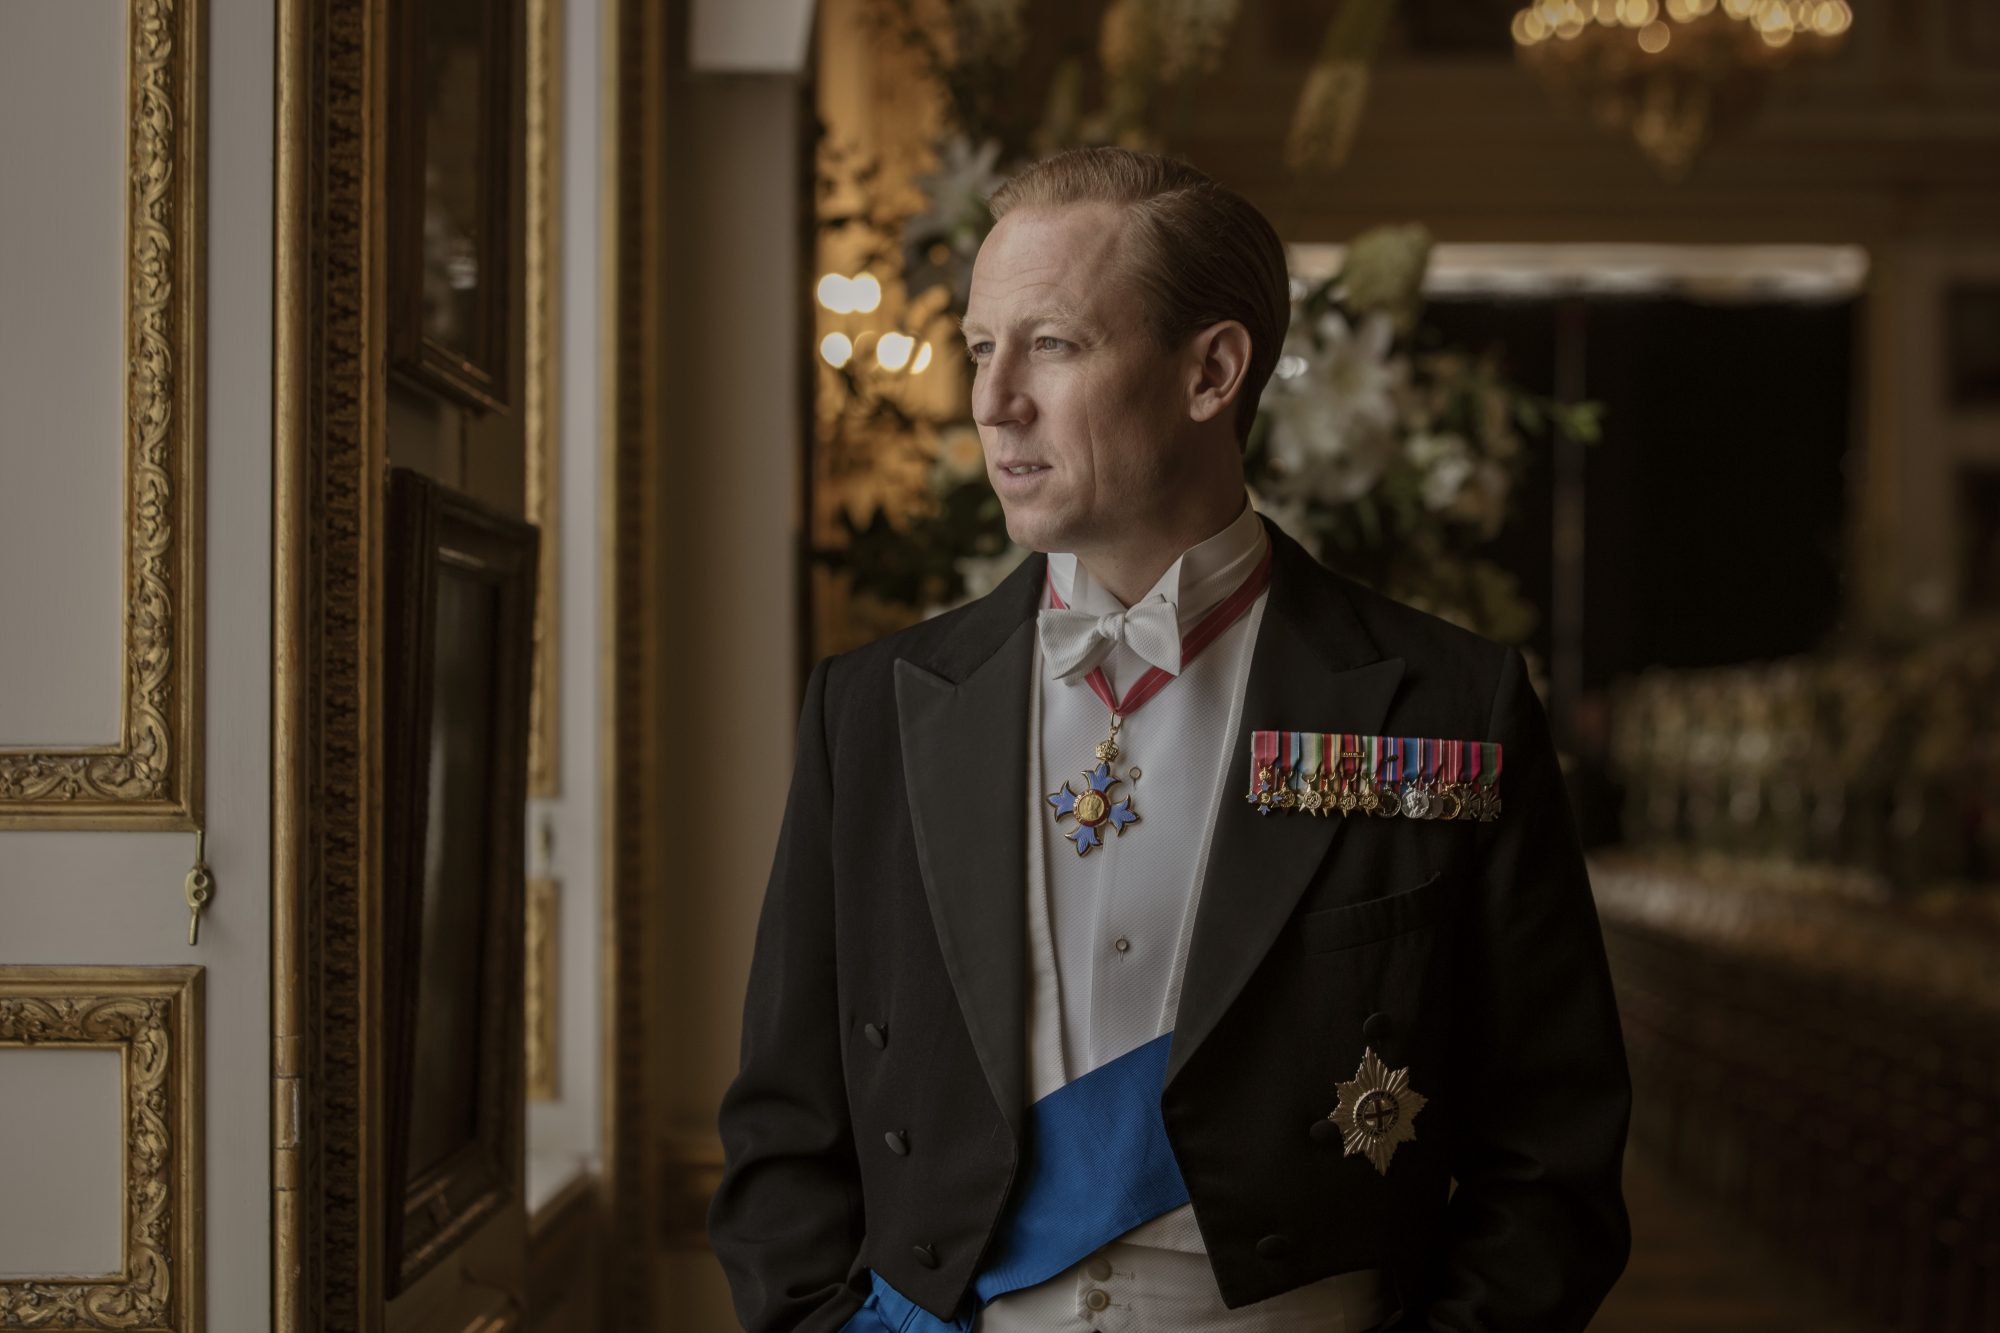 Tobias Menzies as Prince Philip in 'The Crown'